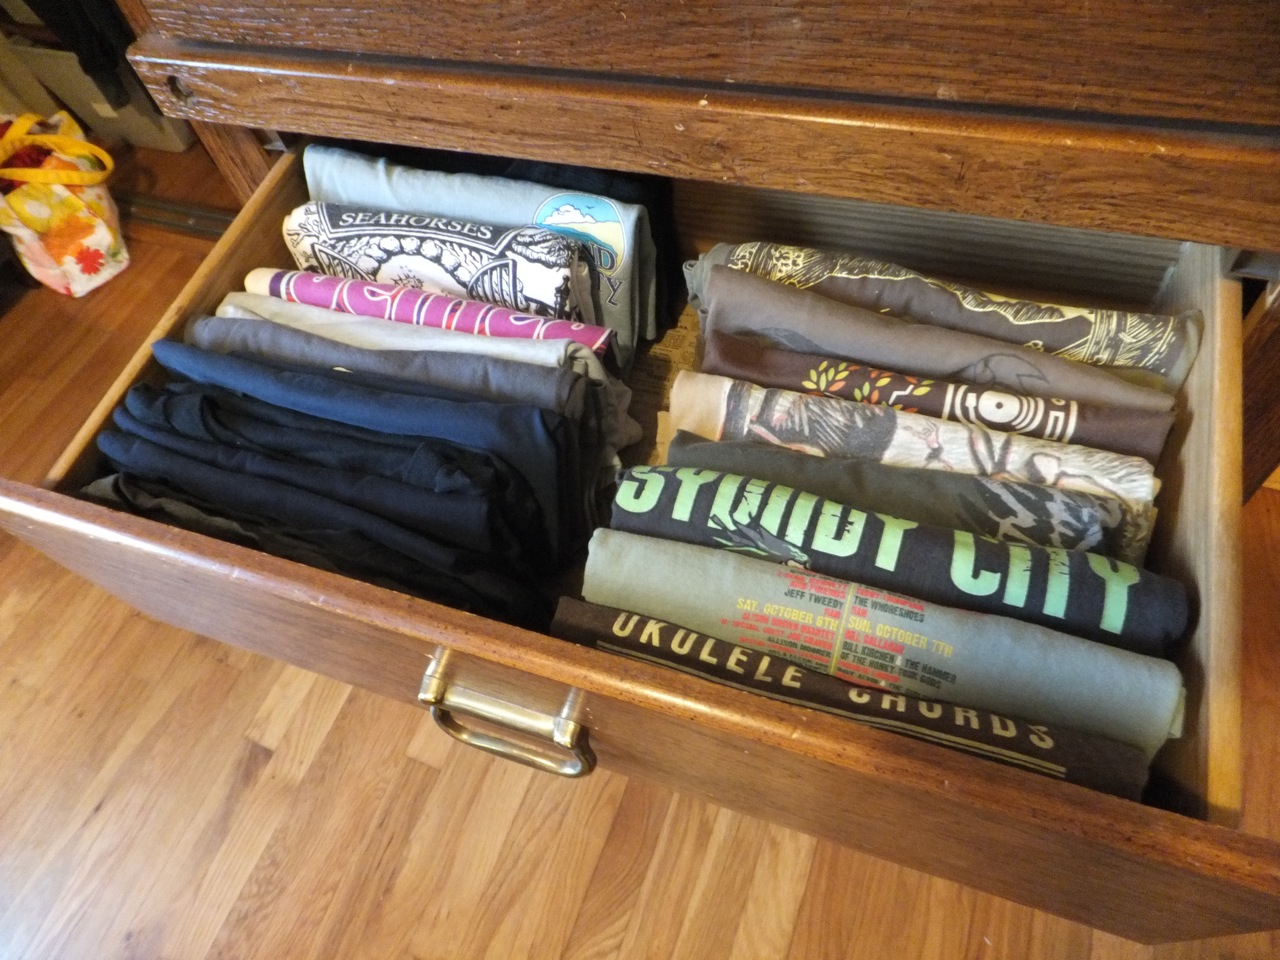 Does this t-shirt drawer belong to someone you know?